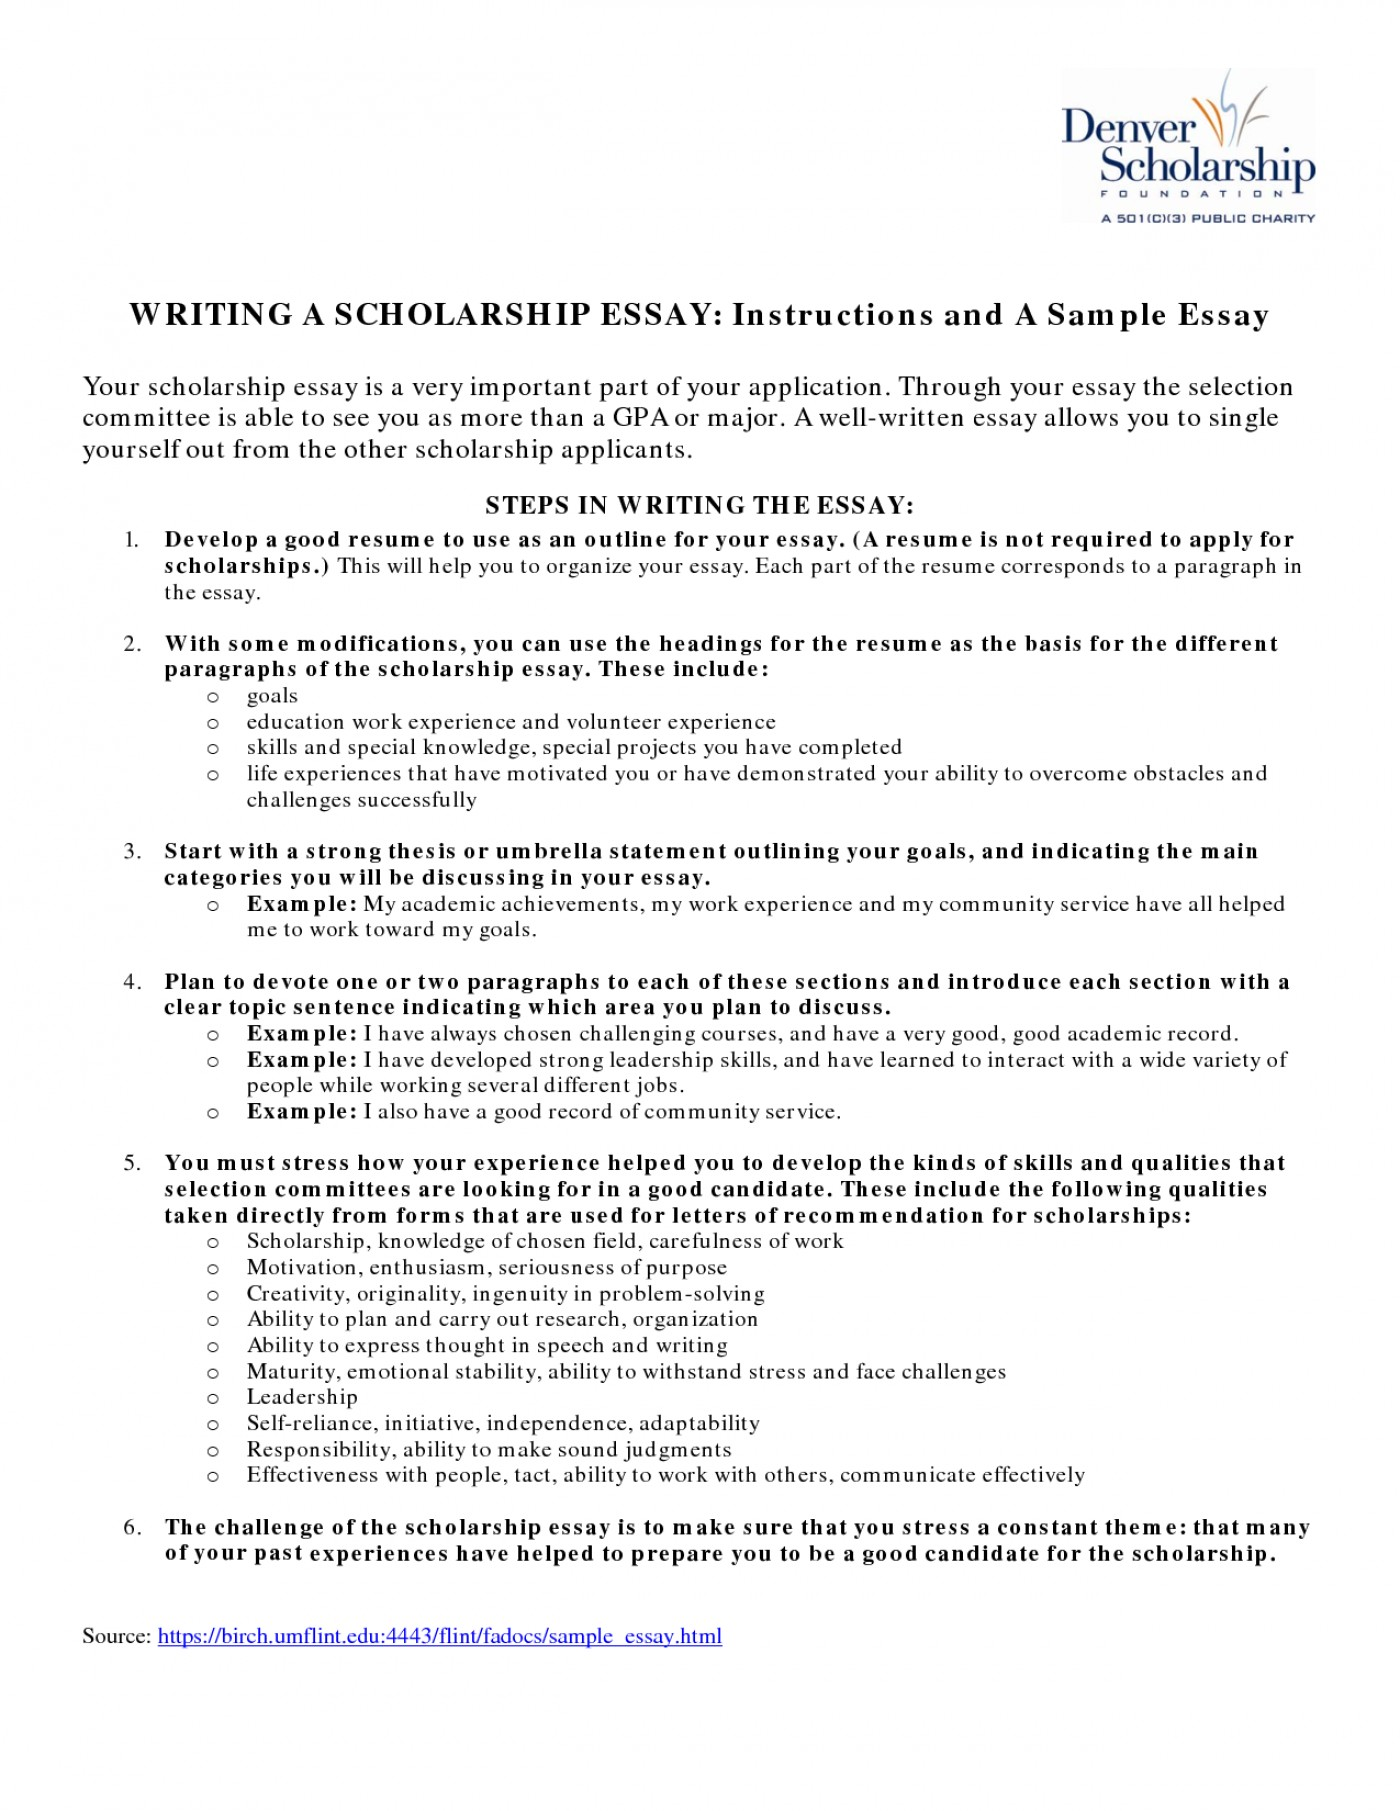 023 Essay Example What To Write For Scholarship About Yourself On Tips Writing Effective Essays Awesome A How Introduction That Stands Out Your Career Goals 1400